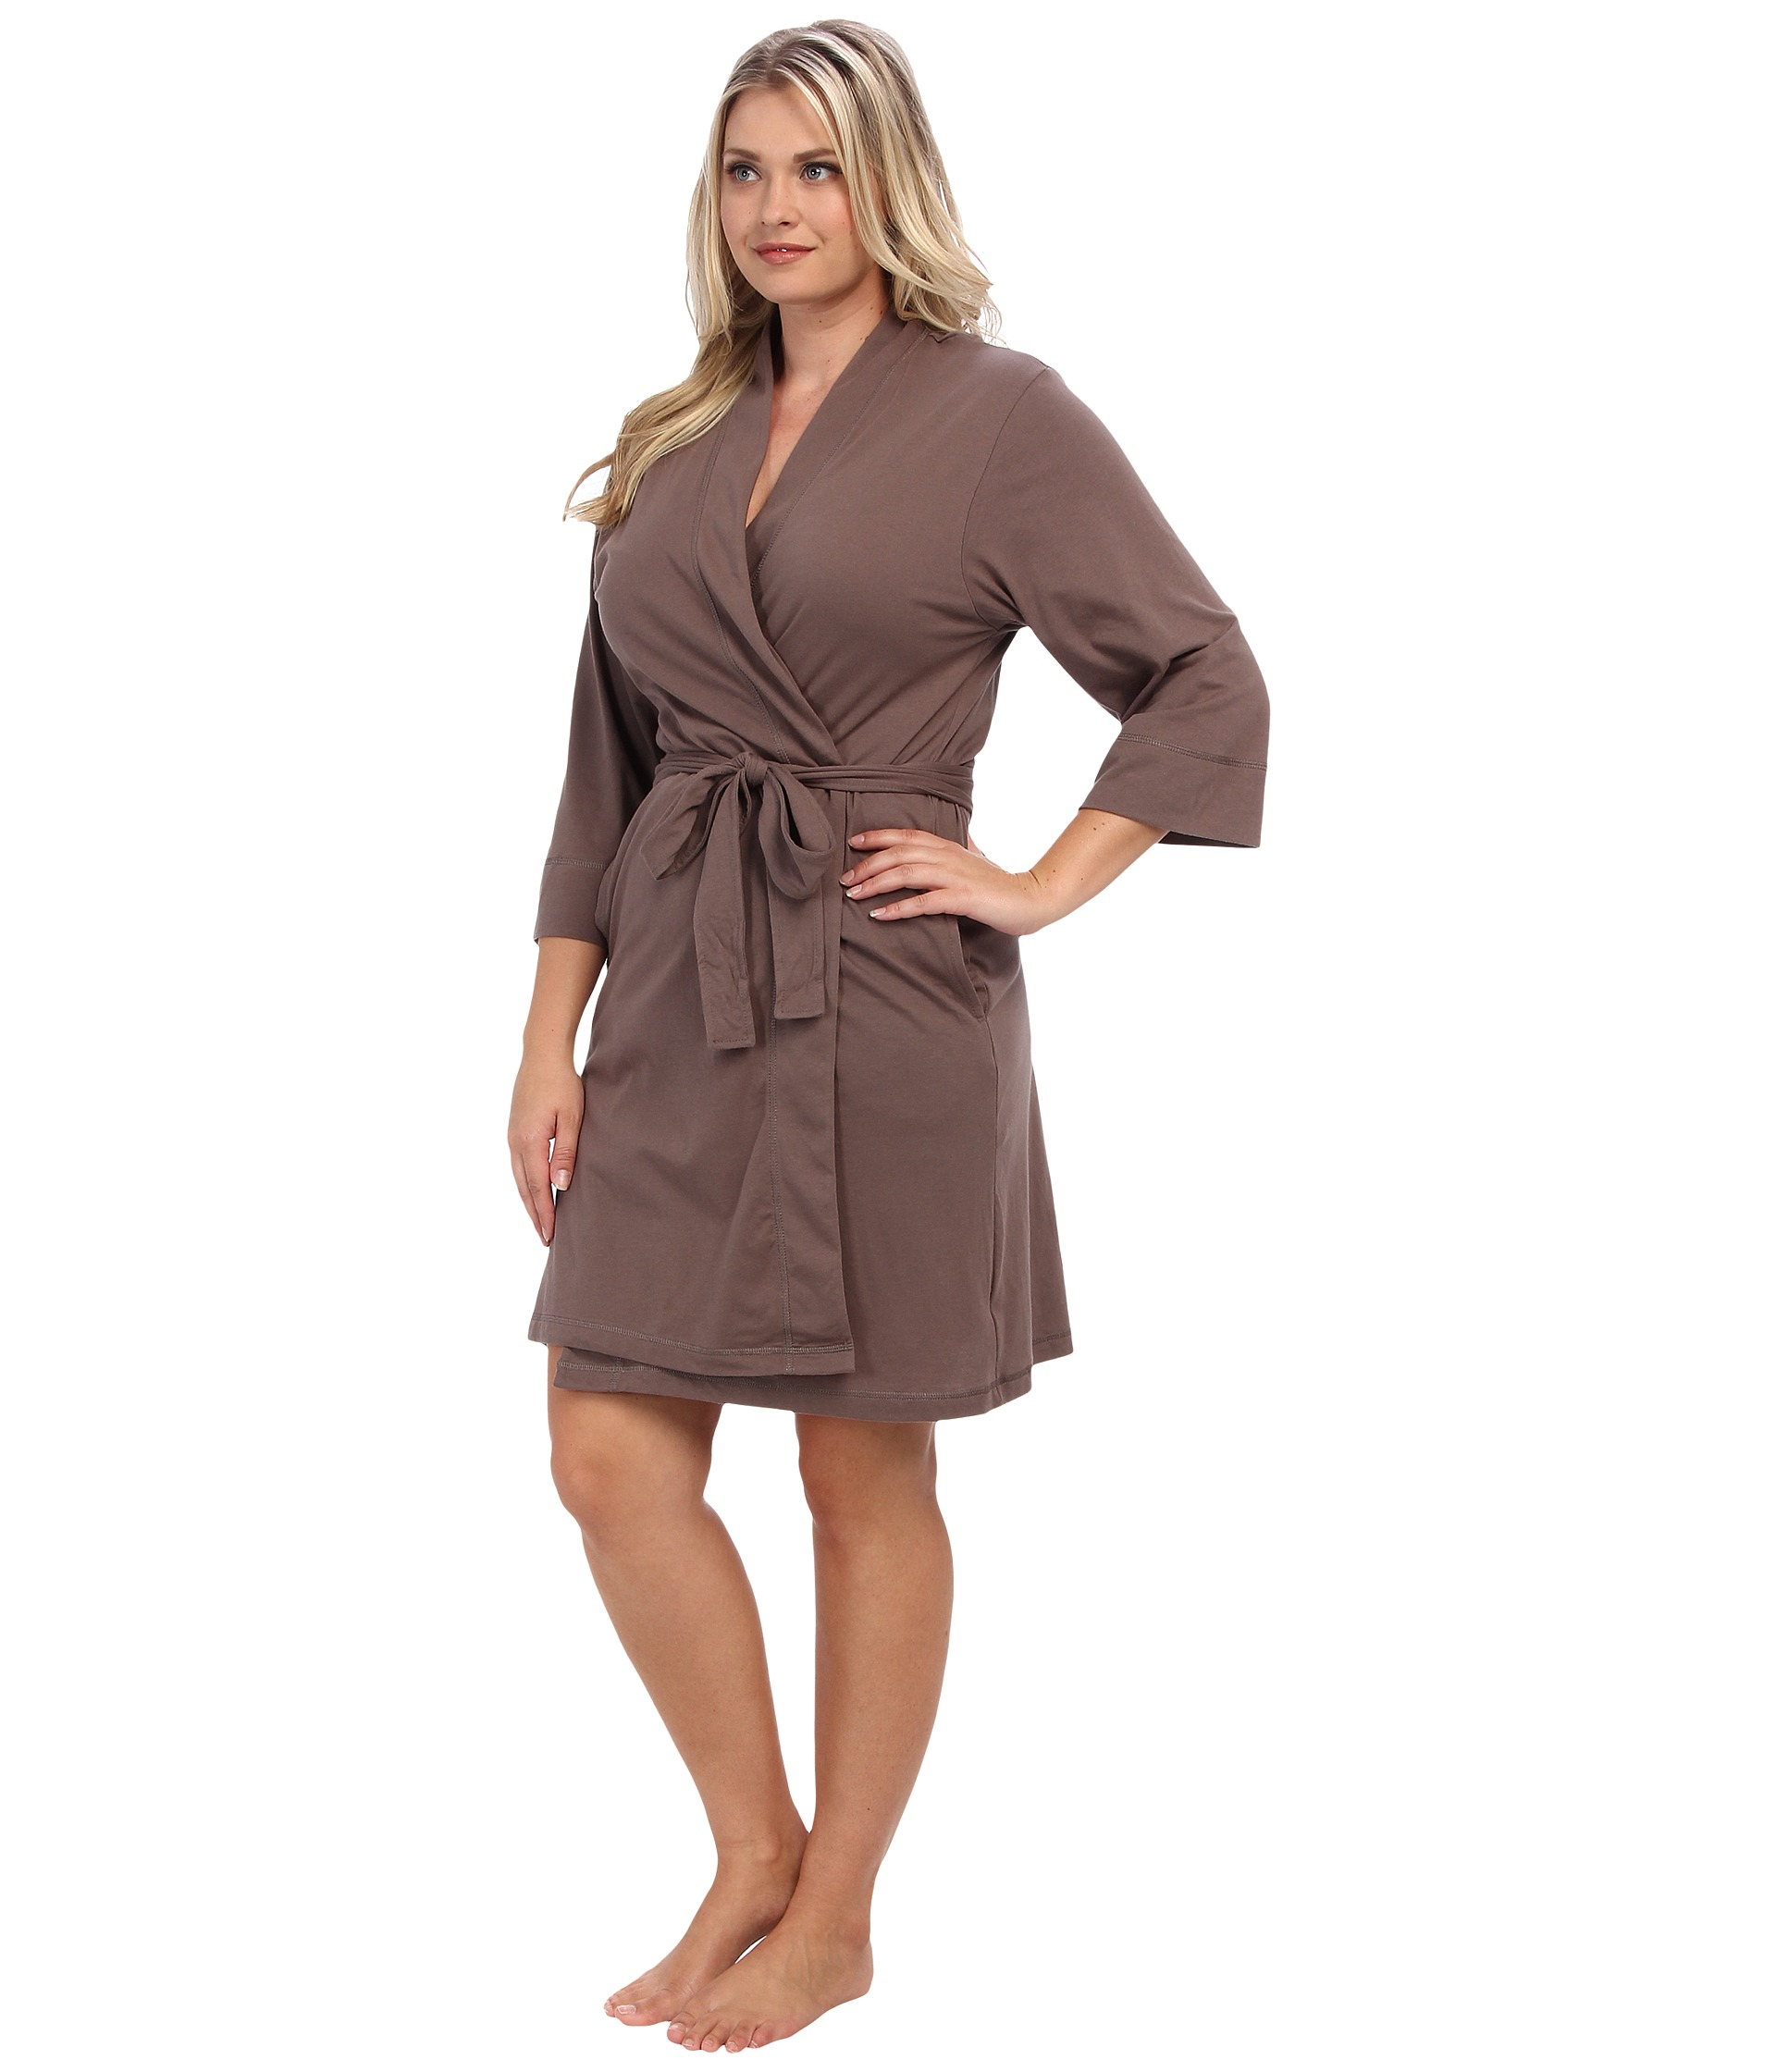 Find great deals on Plus Size Robes at Kohl's today! Sponsored Links Outside companies pay to advertise via these links when specific phrases and words are searched.